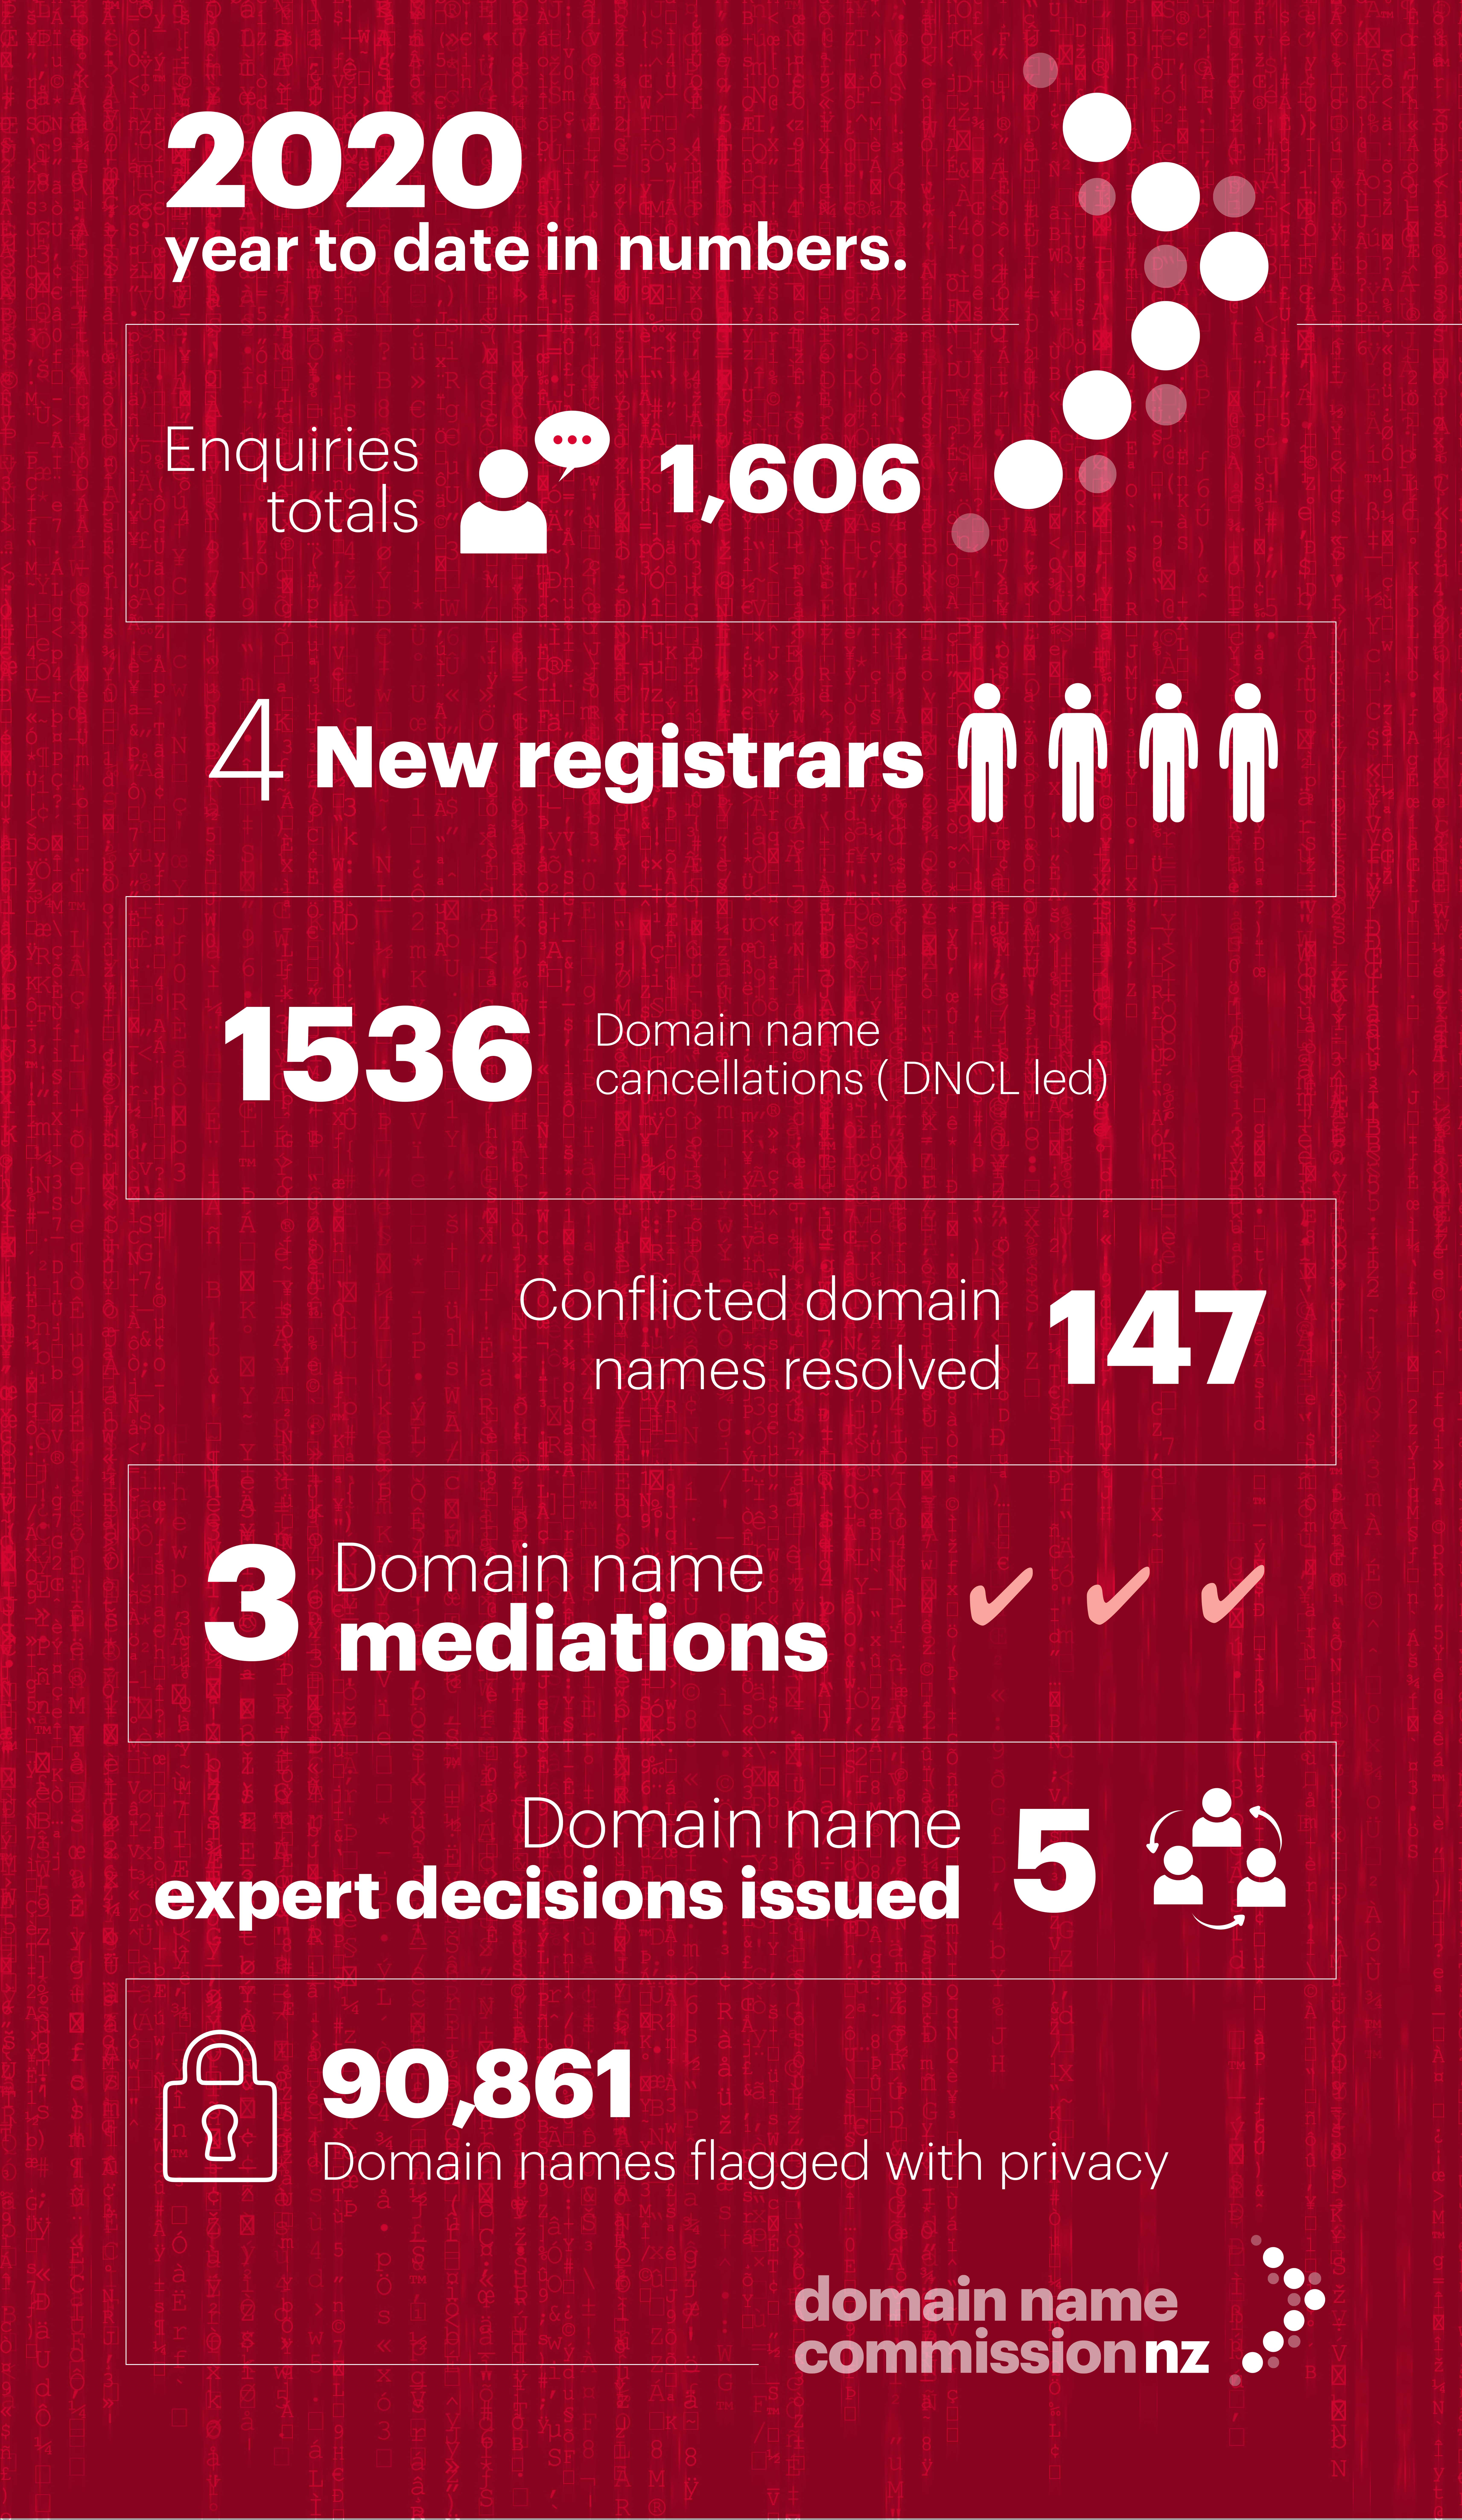 2020 year to date in numbers. 1,606 total enquiries, 4 new registrars, 1,536 domain name cancellations (DNCL led), 3 domain name mediations, 5 domain name expert decisions issued, 90,861 domain names flagged with privacy.